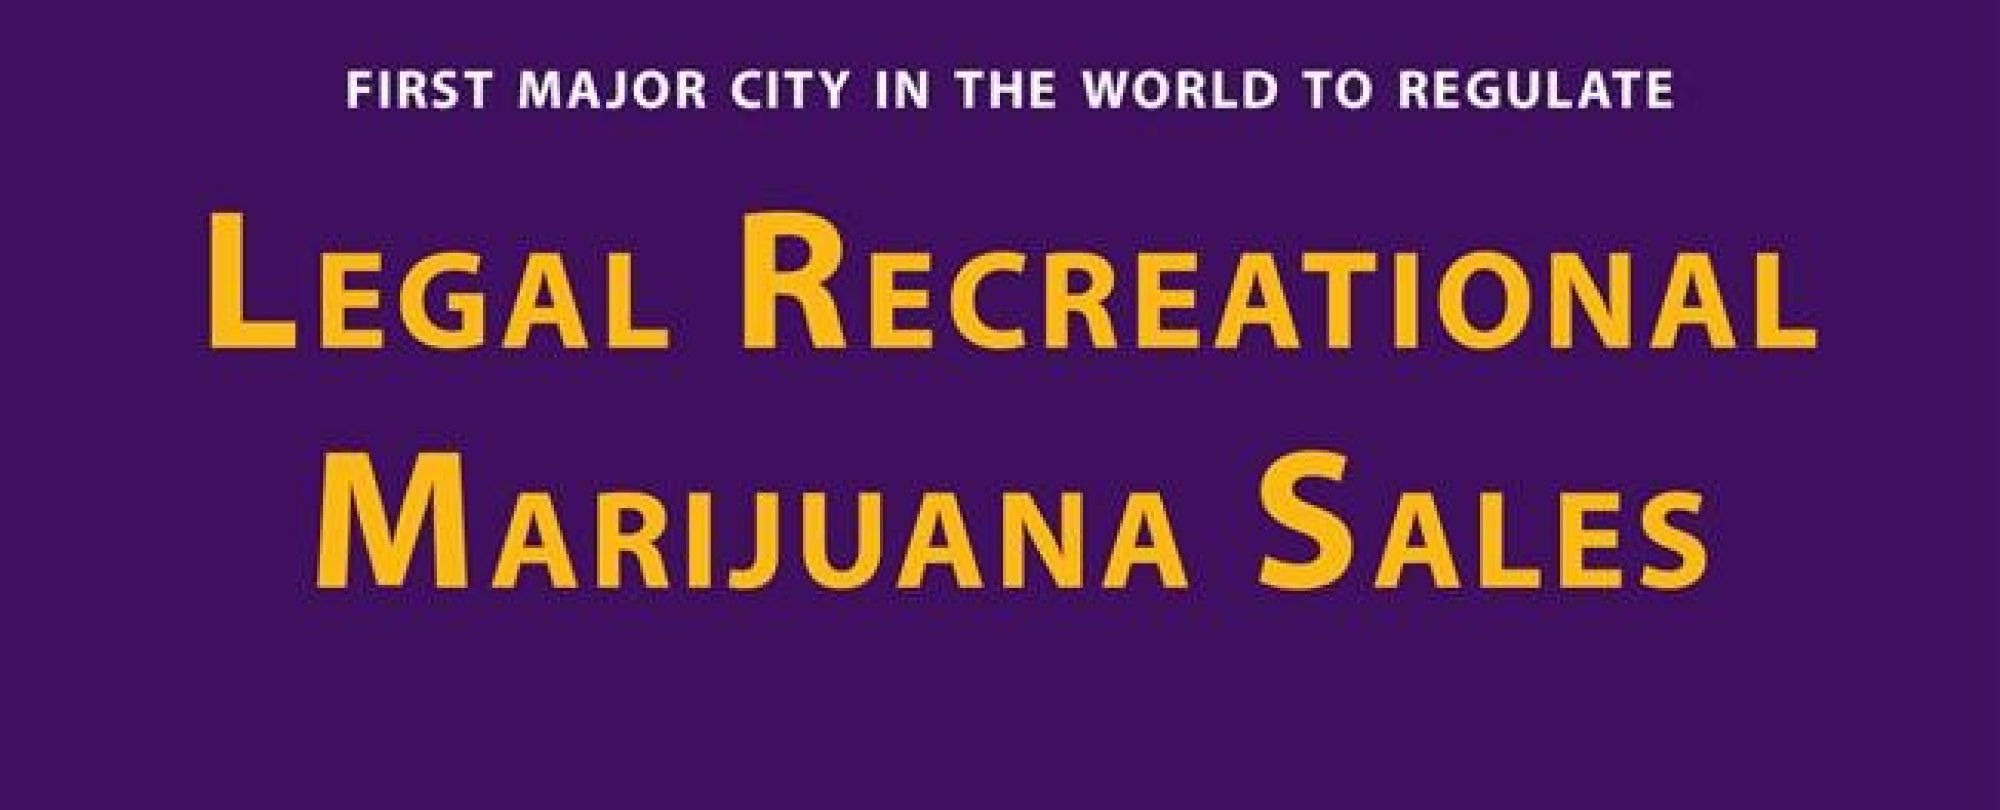 First major city in the world to regulate legal recreational marijuana sales